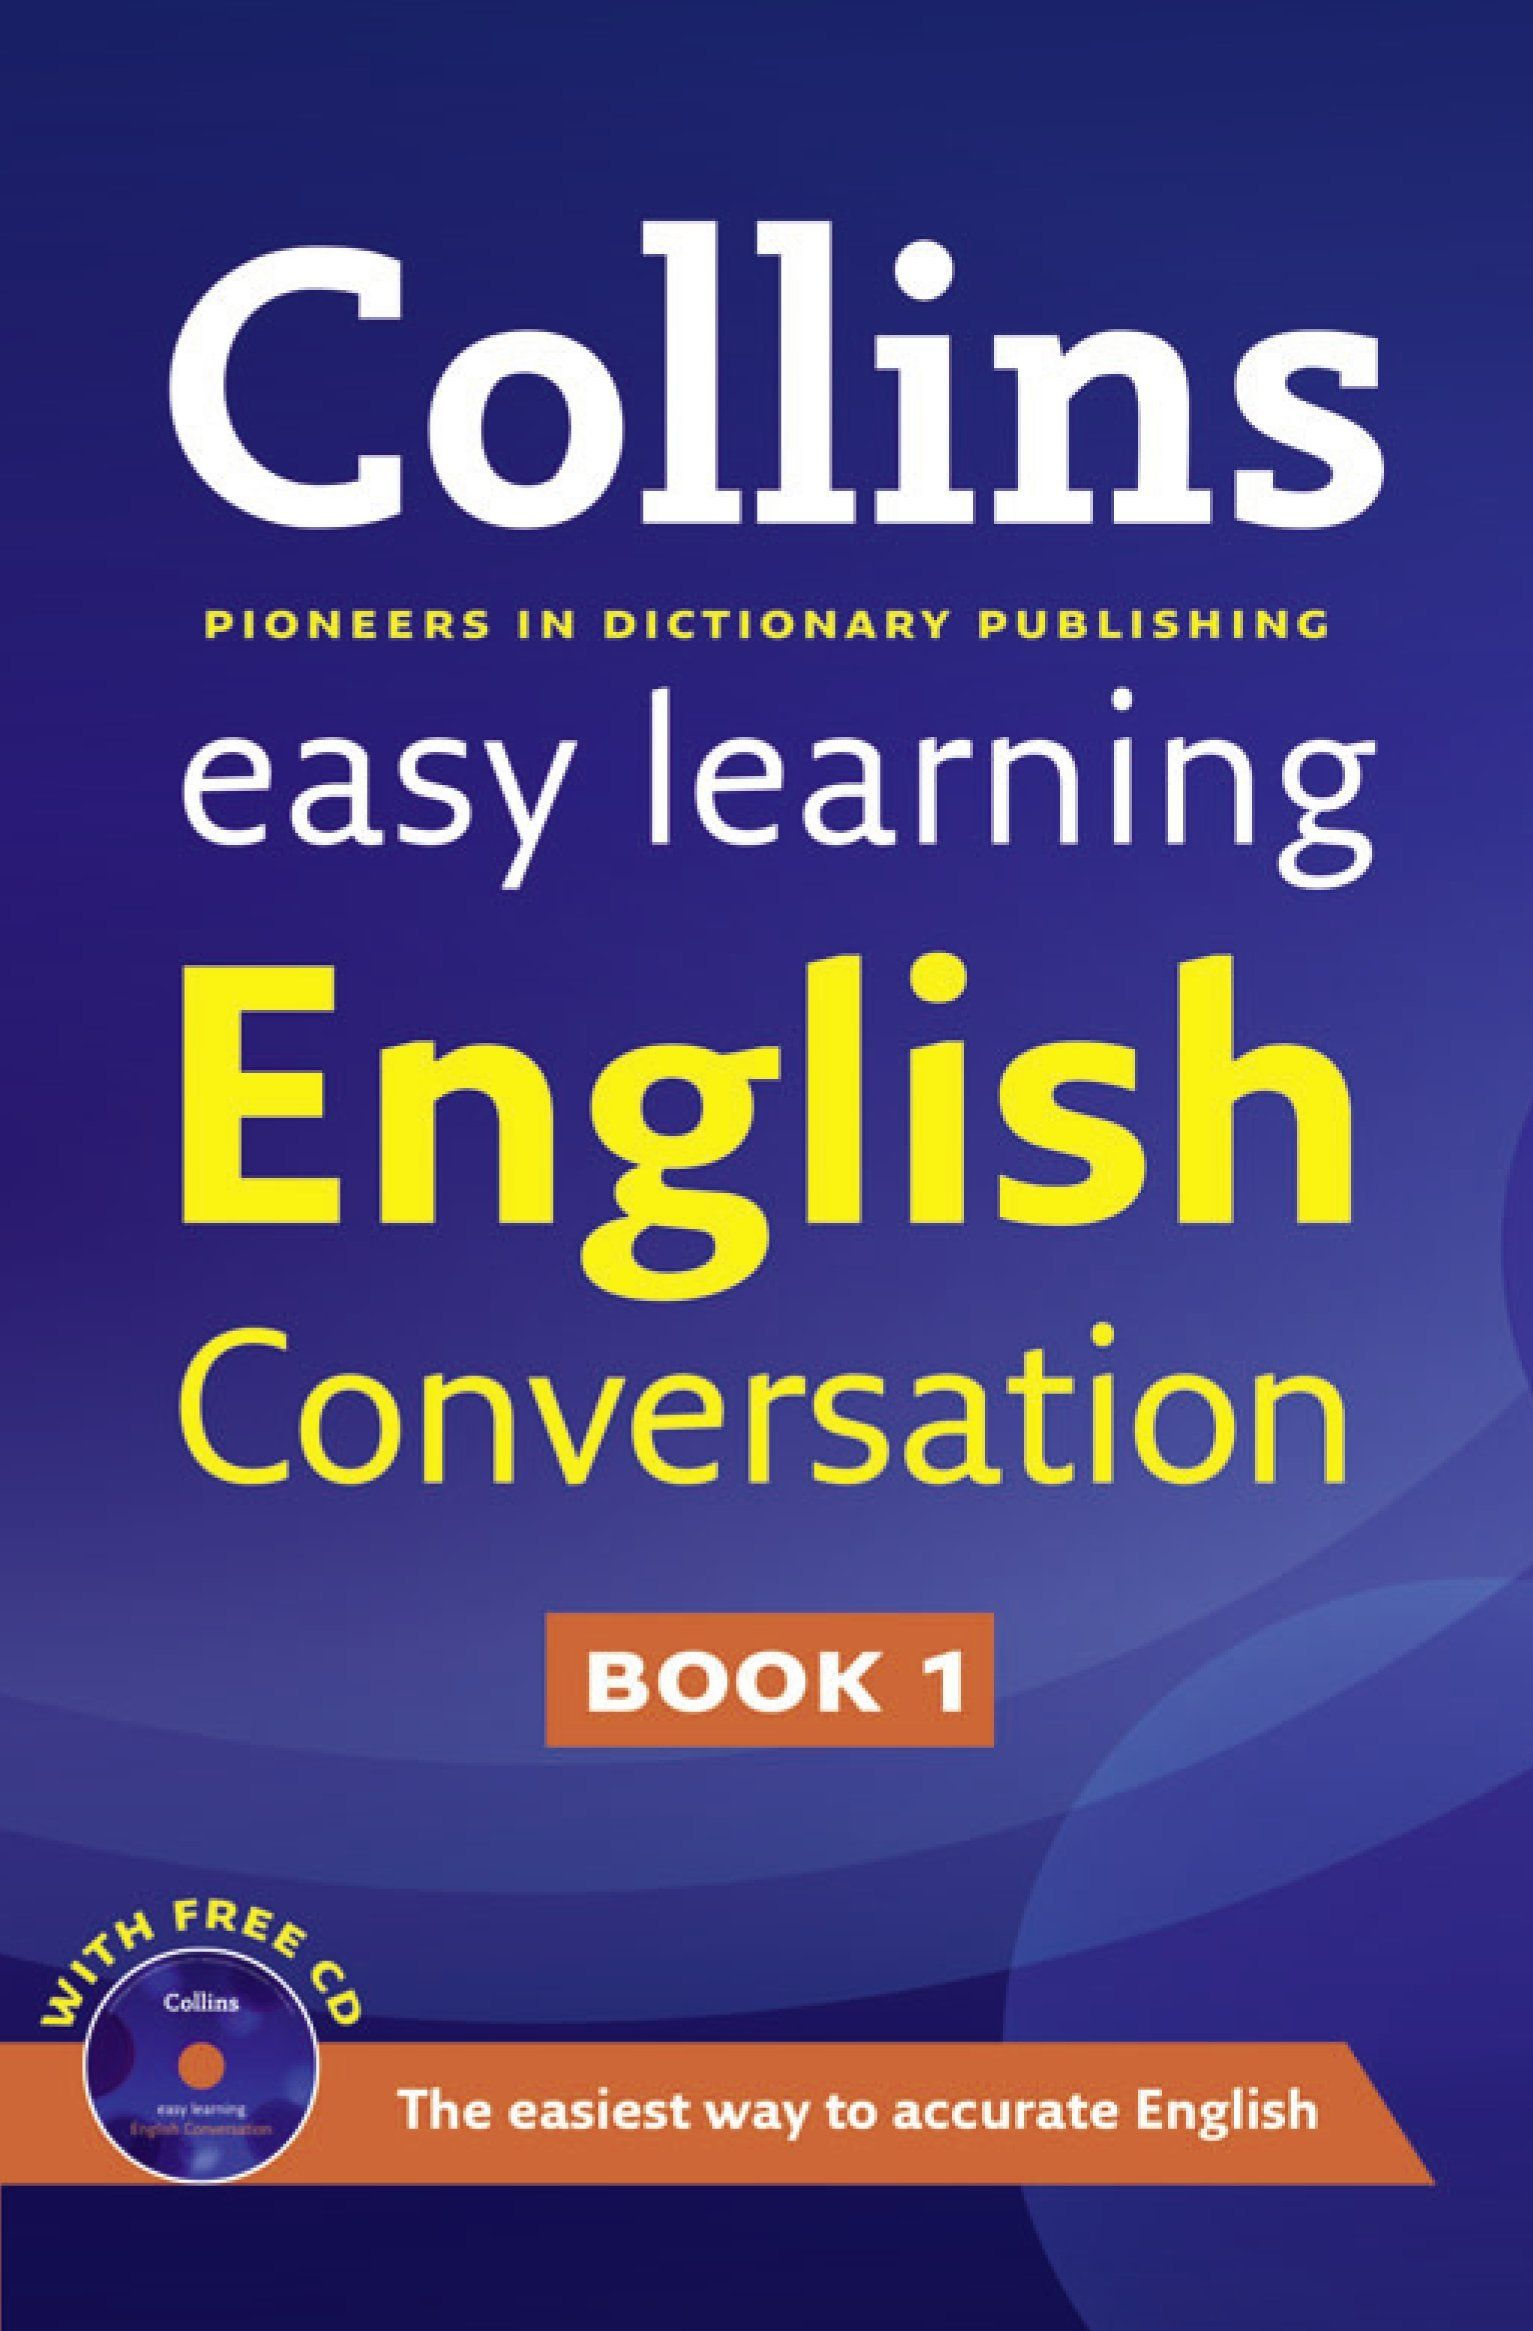 Collins Easy Learning English Conversation Book 1 Collins Easy Learning English Conversation Book 1 Is A U Learn English English Speaking Book Easy Learning